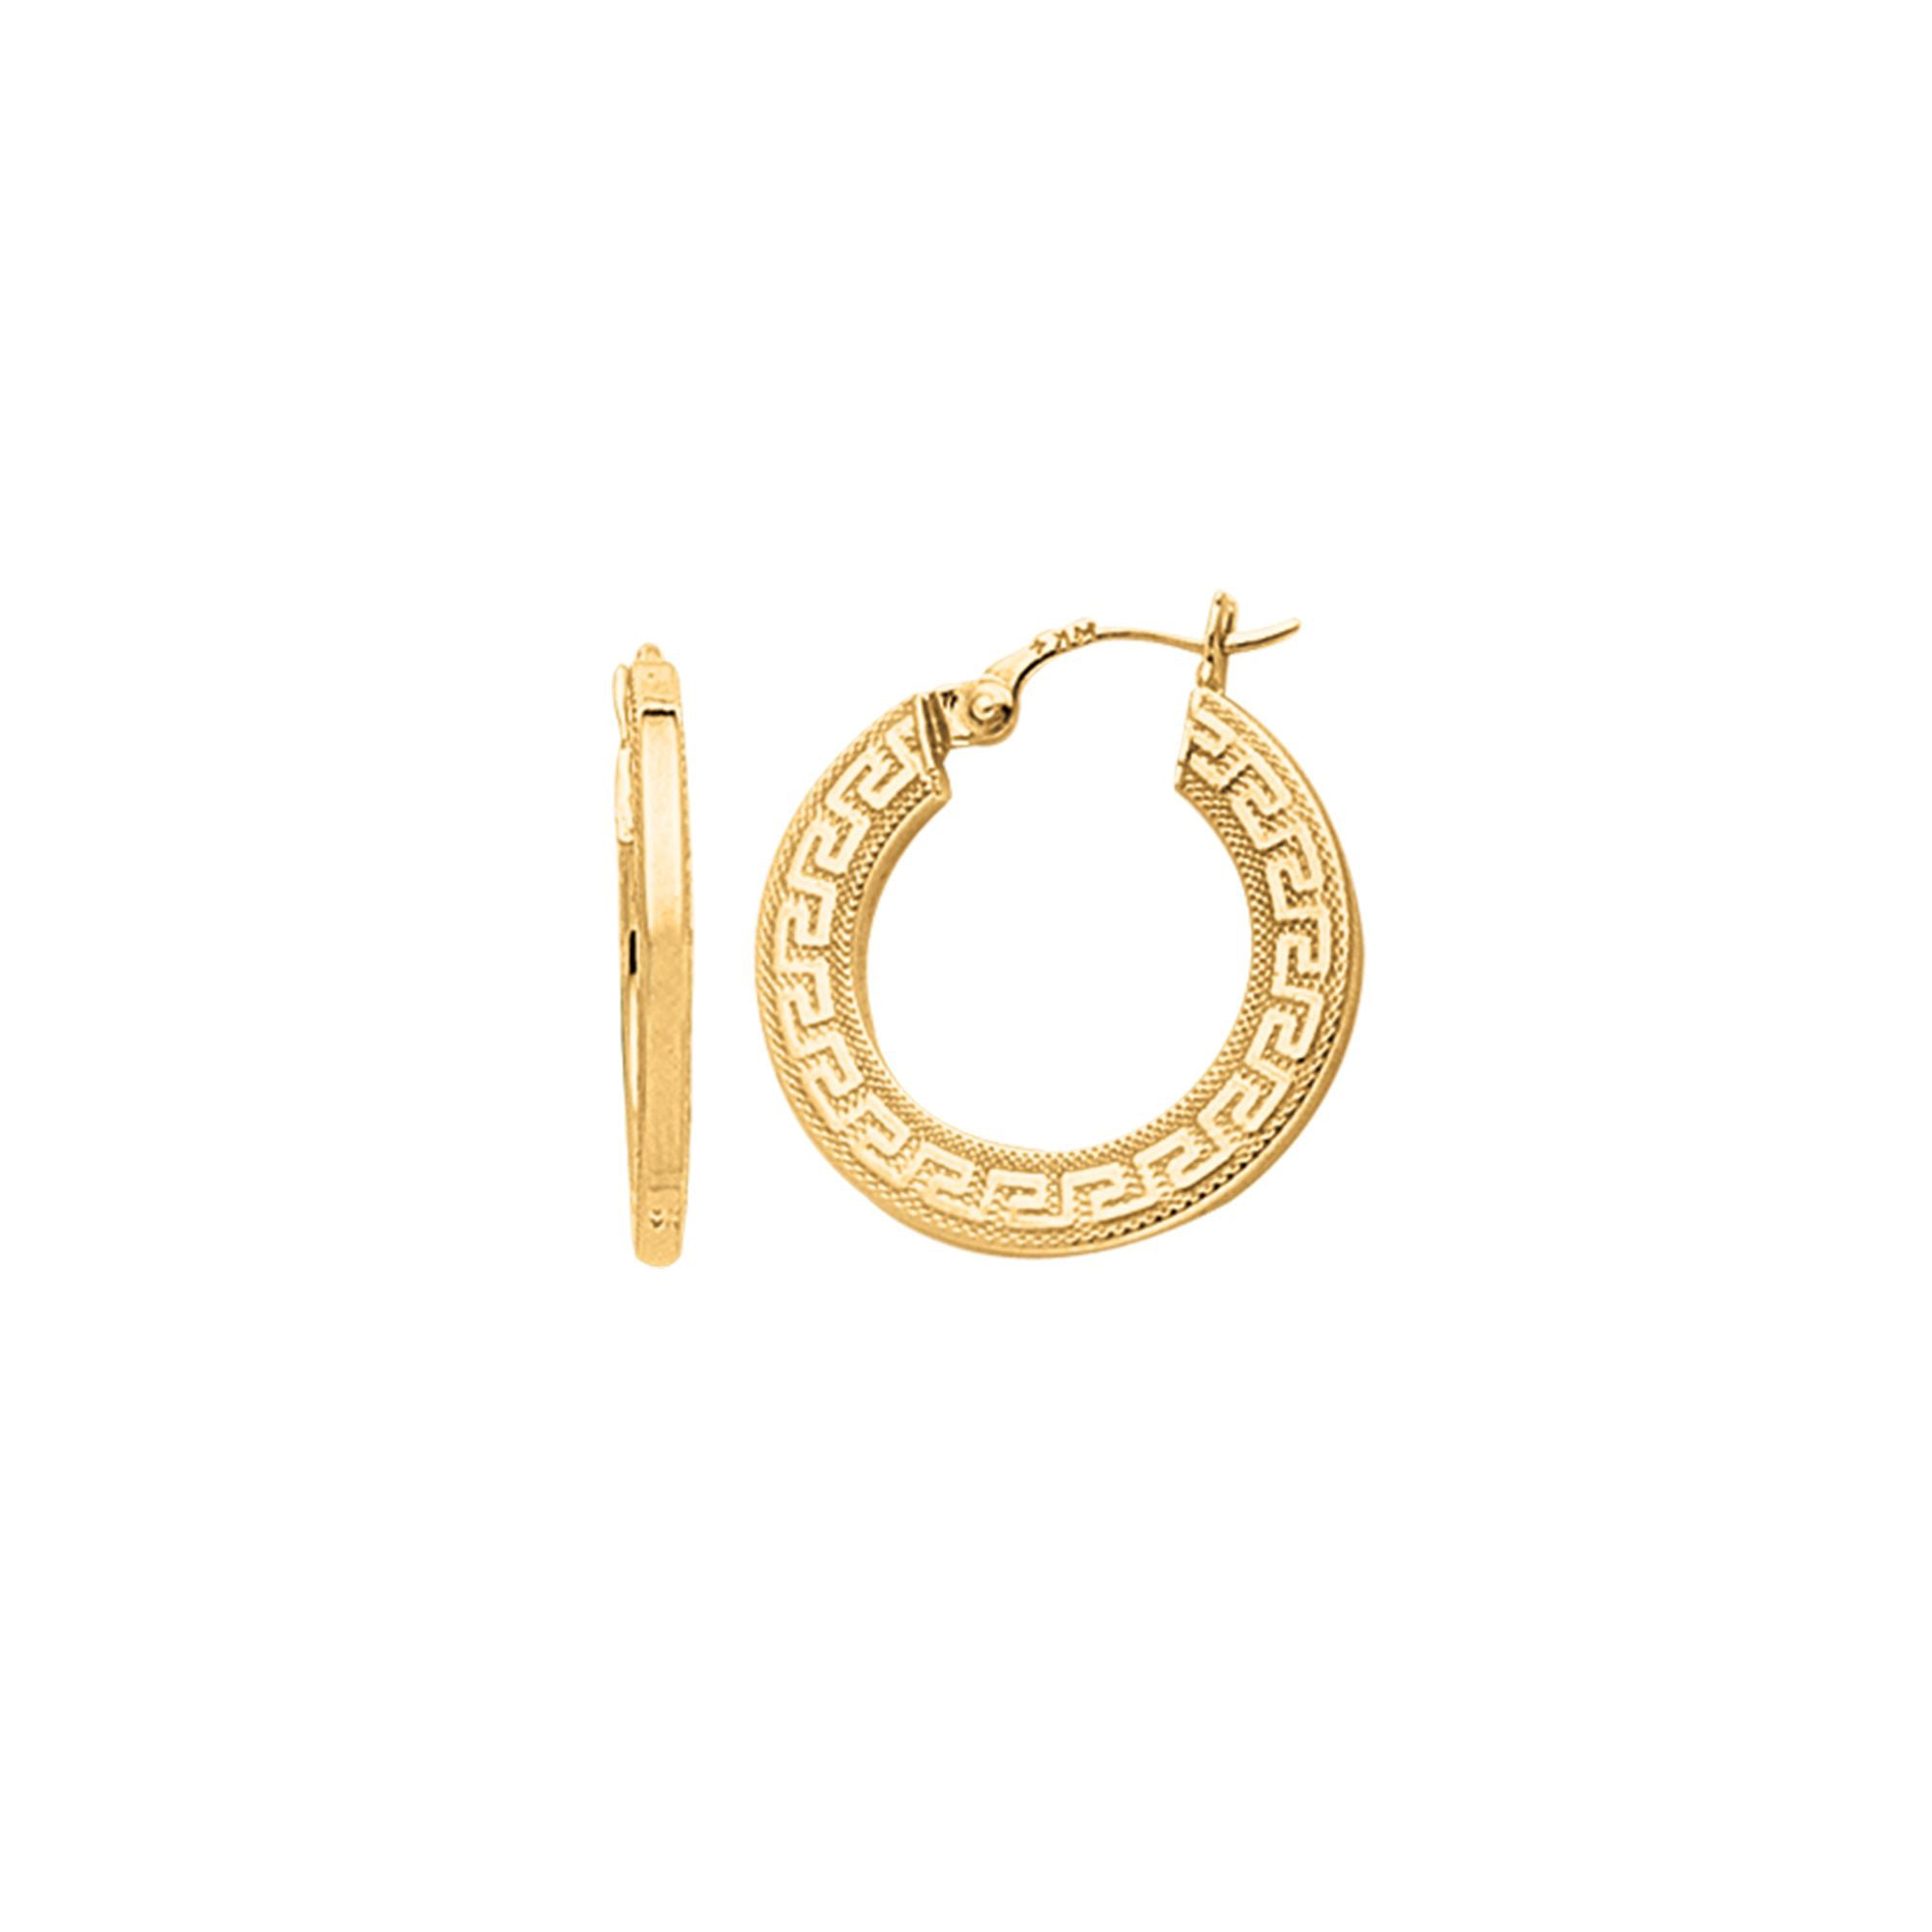 Greek Key Textured Hoop Earrings, 14K Yellow Gold